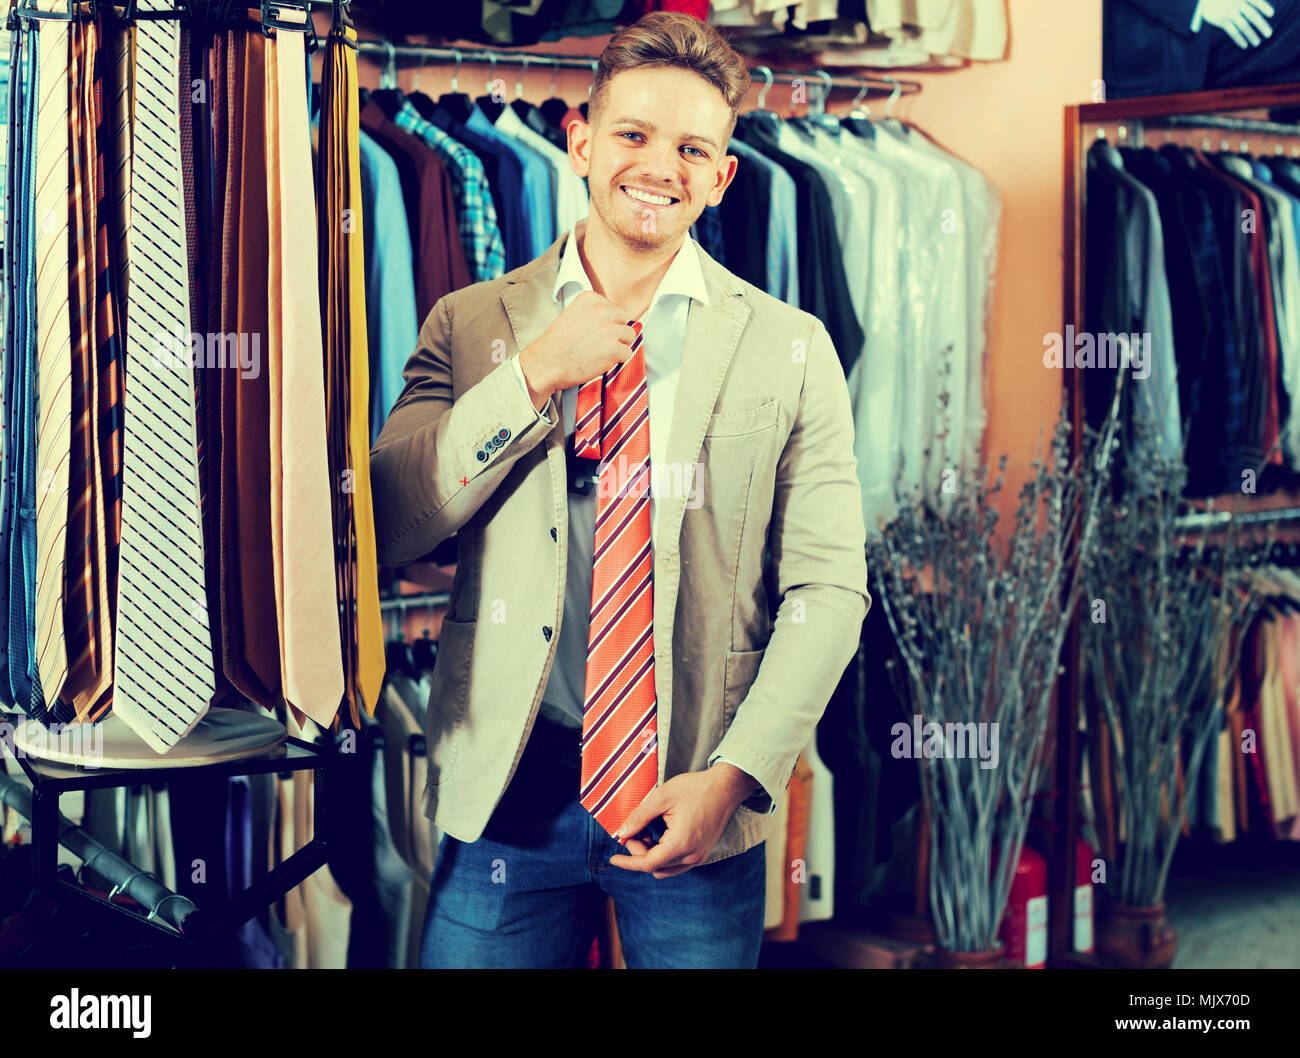 fb2cb275 Young man choosing new suit in men's cloths store Stock Photo ...